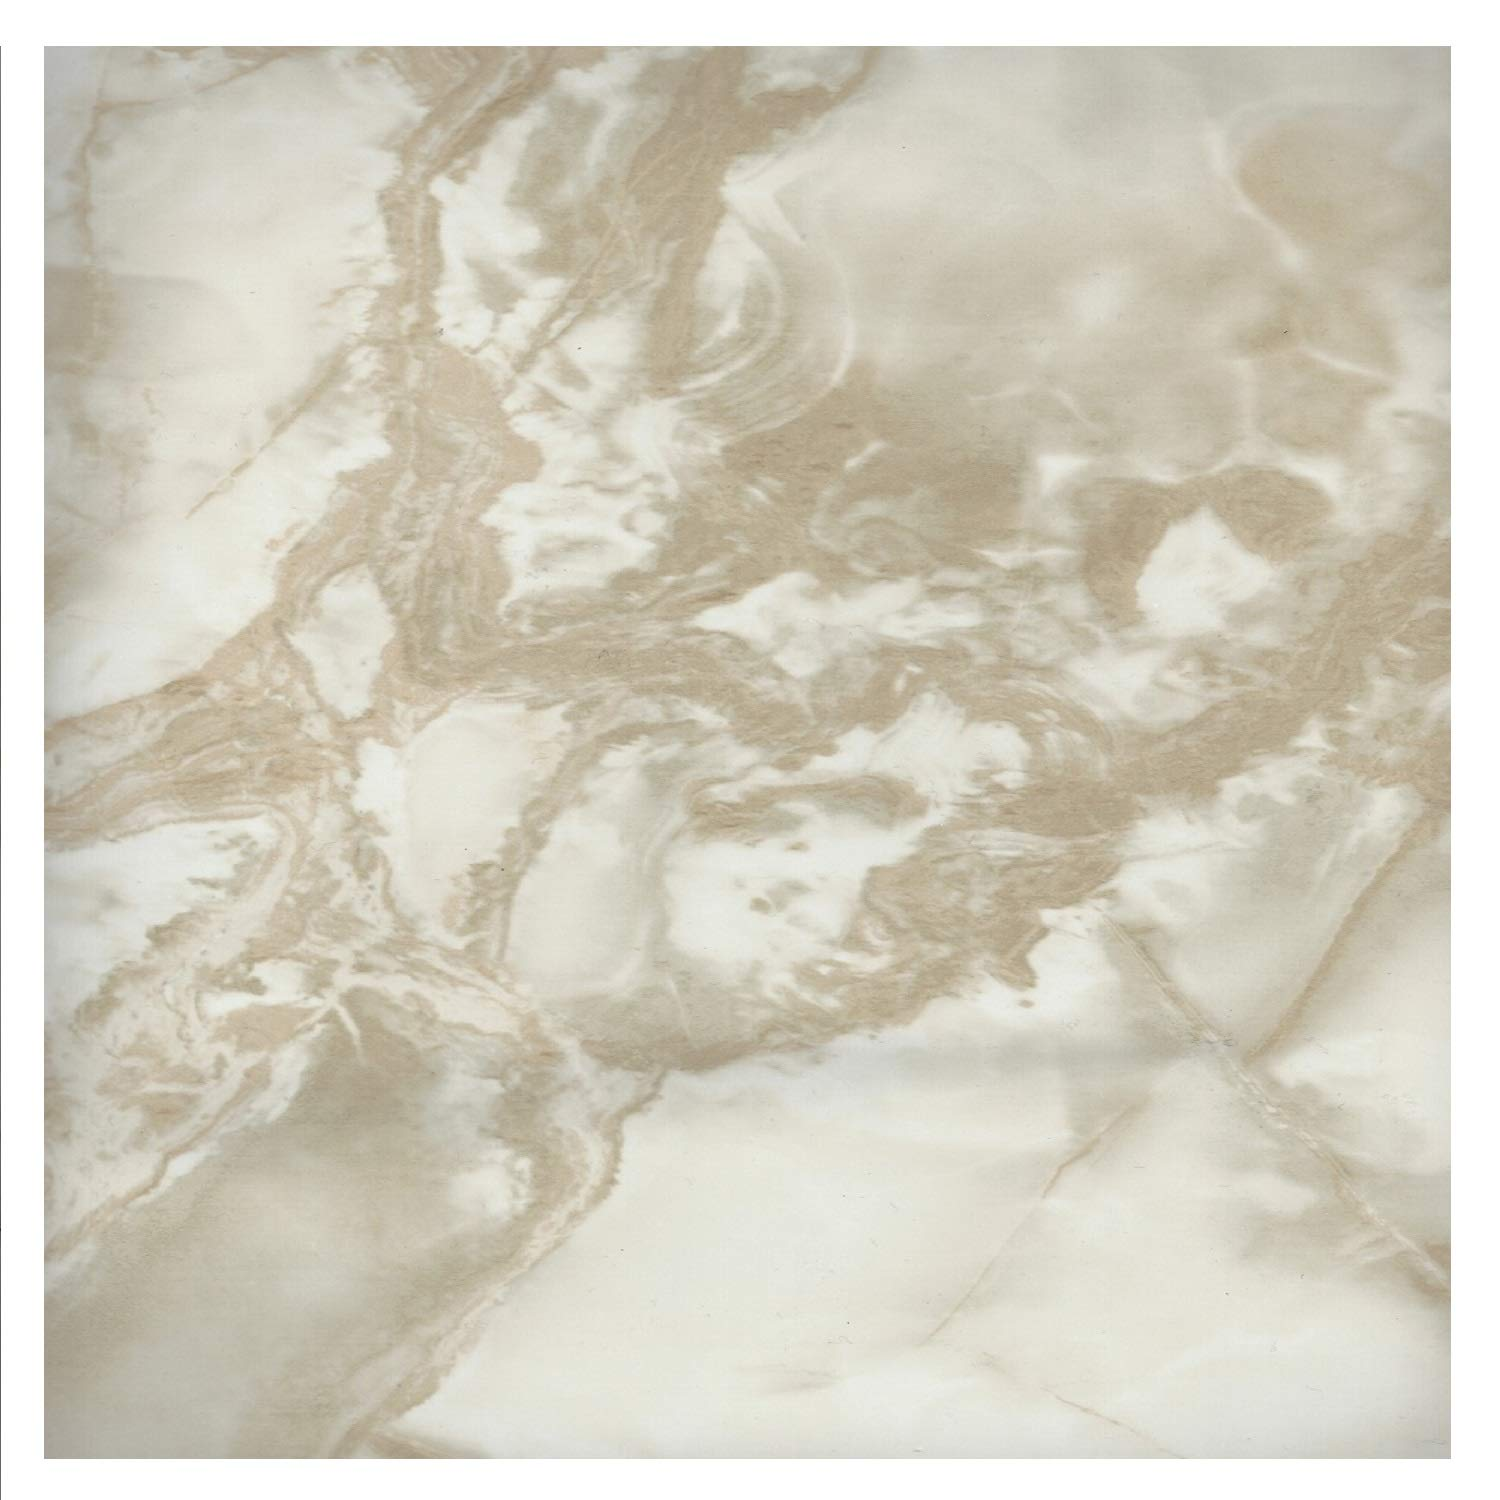 EZ FAUX DECOR Self Adhesive Vinyl Peel and Stick Riviera Beige White Faux Marble Granite Film to Update Countertop or Backsplash Thick Waterproof 36'' W x 72'' Not Grandma's Contact Paper Why Paint?